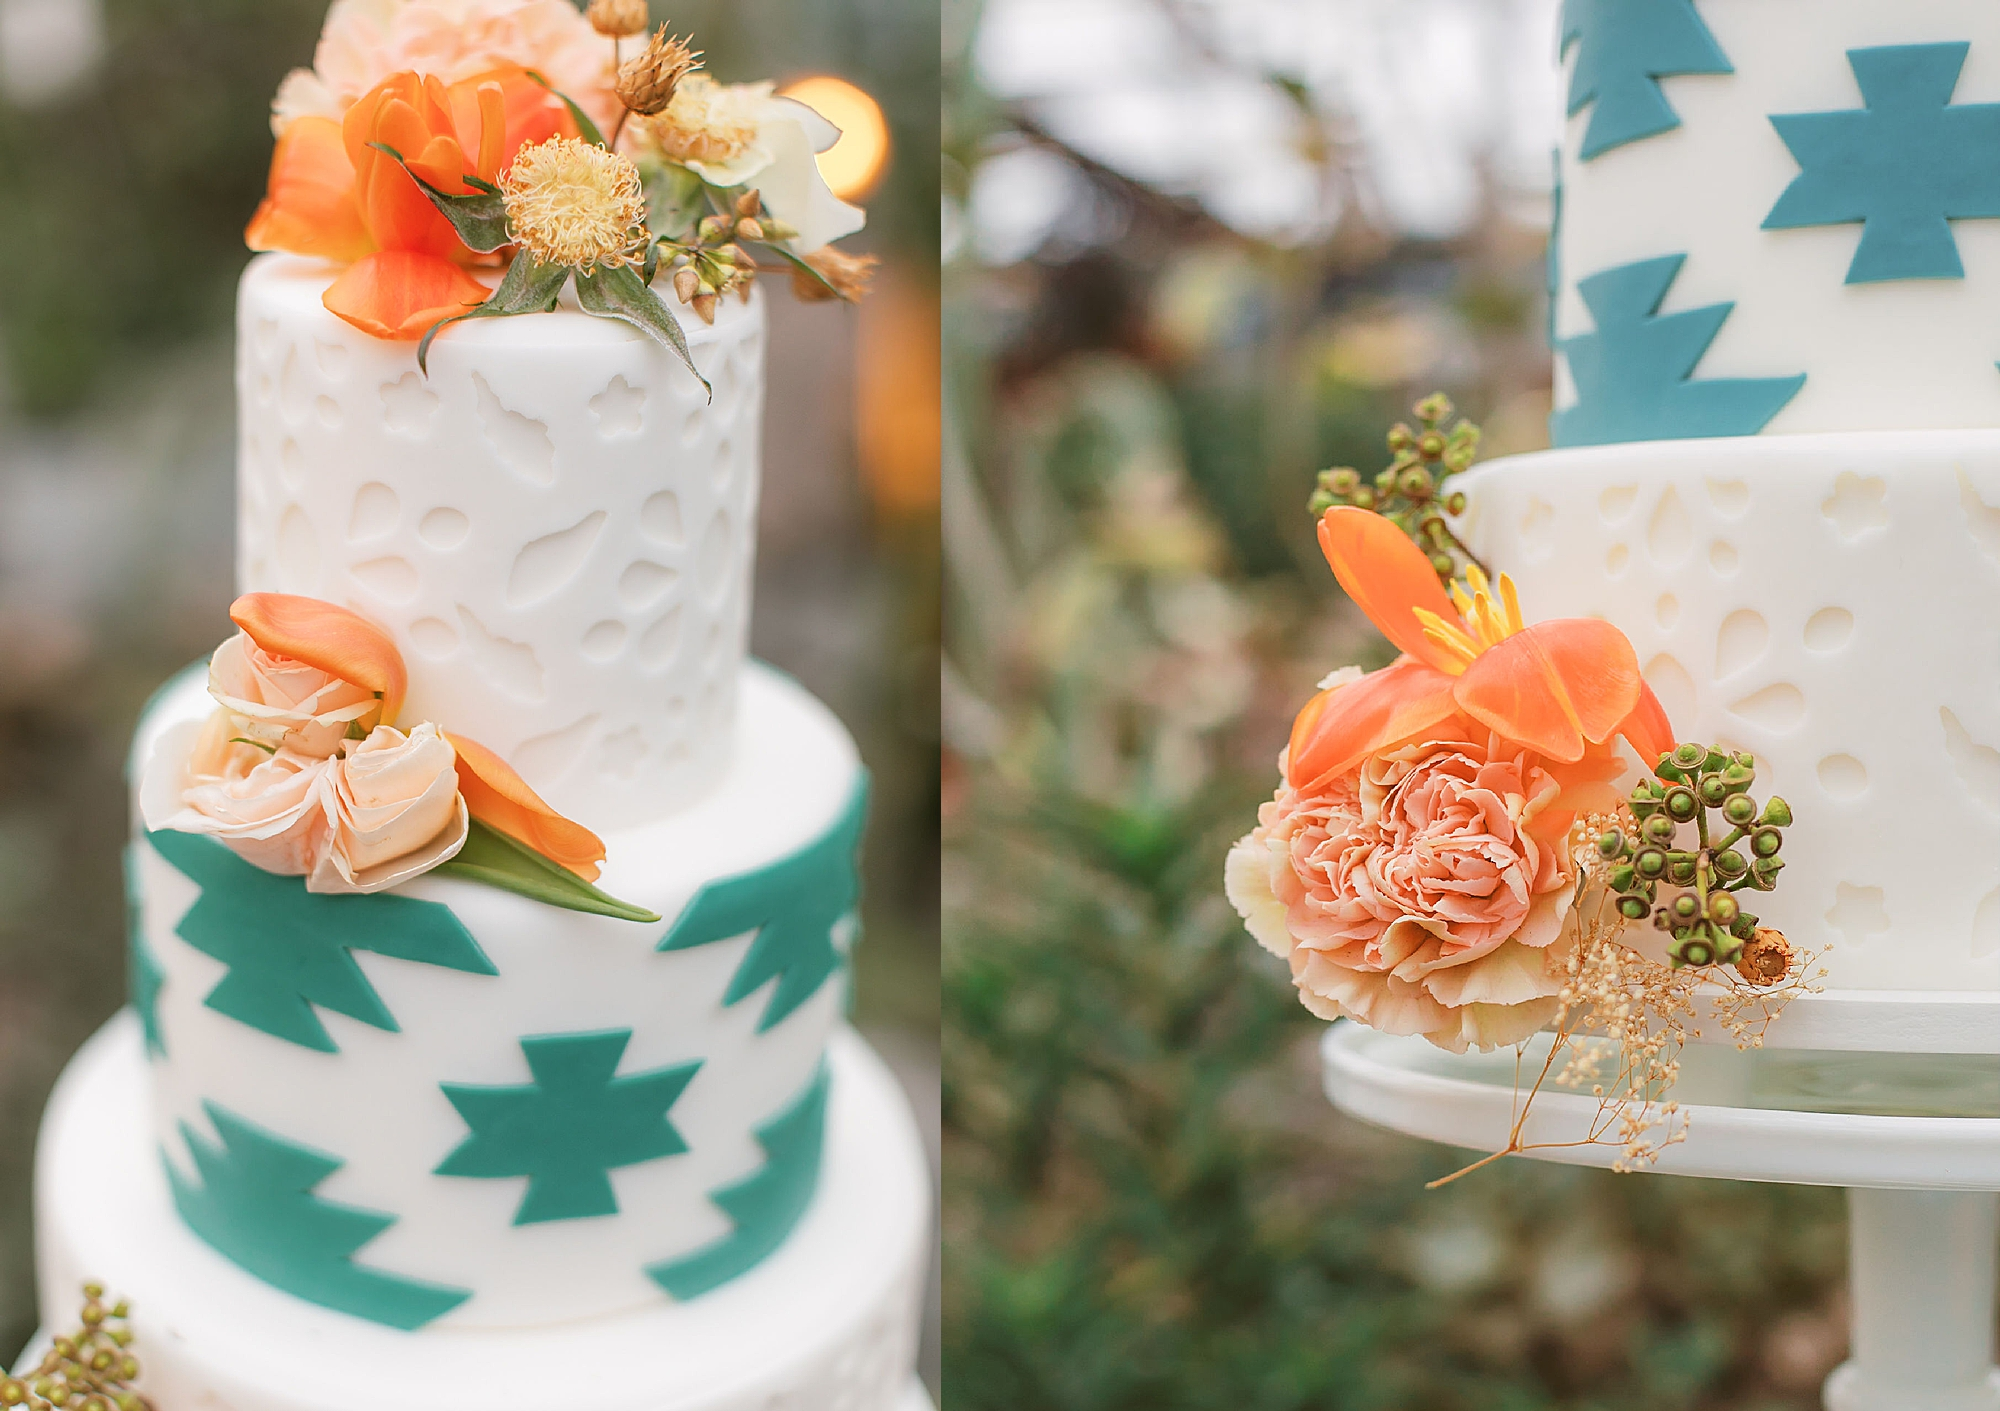 Colorful and Vibrant Wedding Photography at Fairmount Horticultural Center by Magdalena Studios 0006